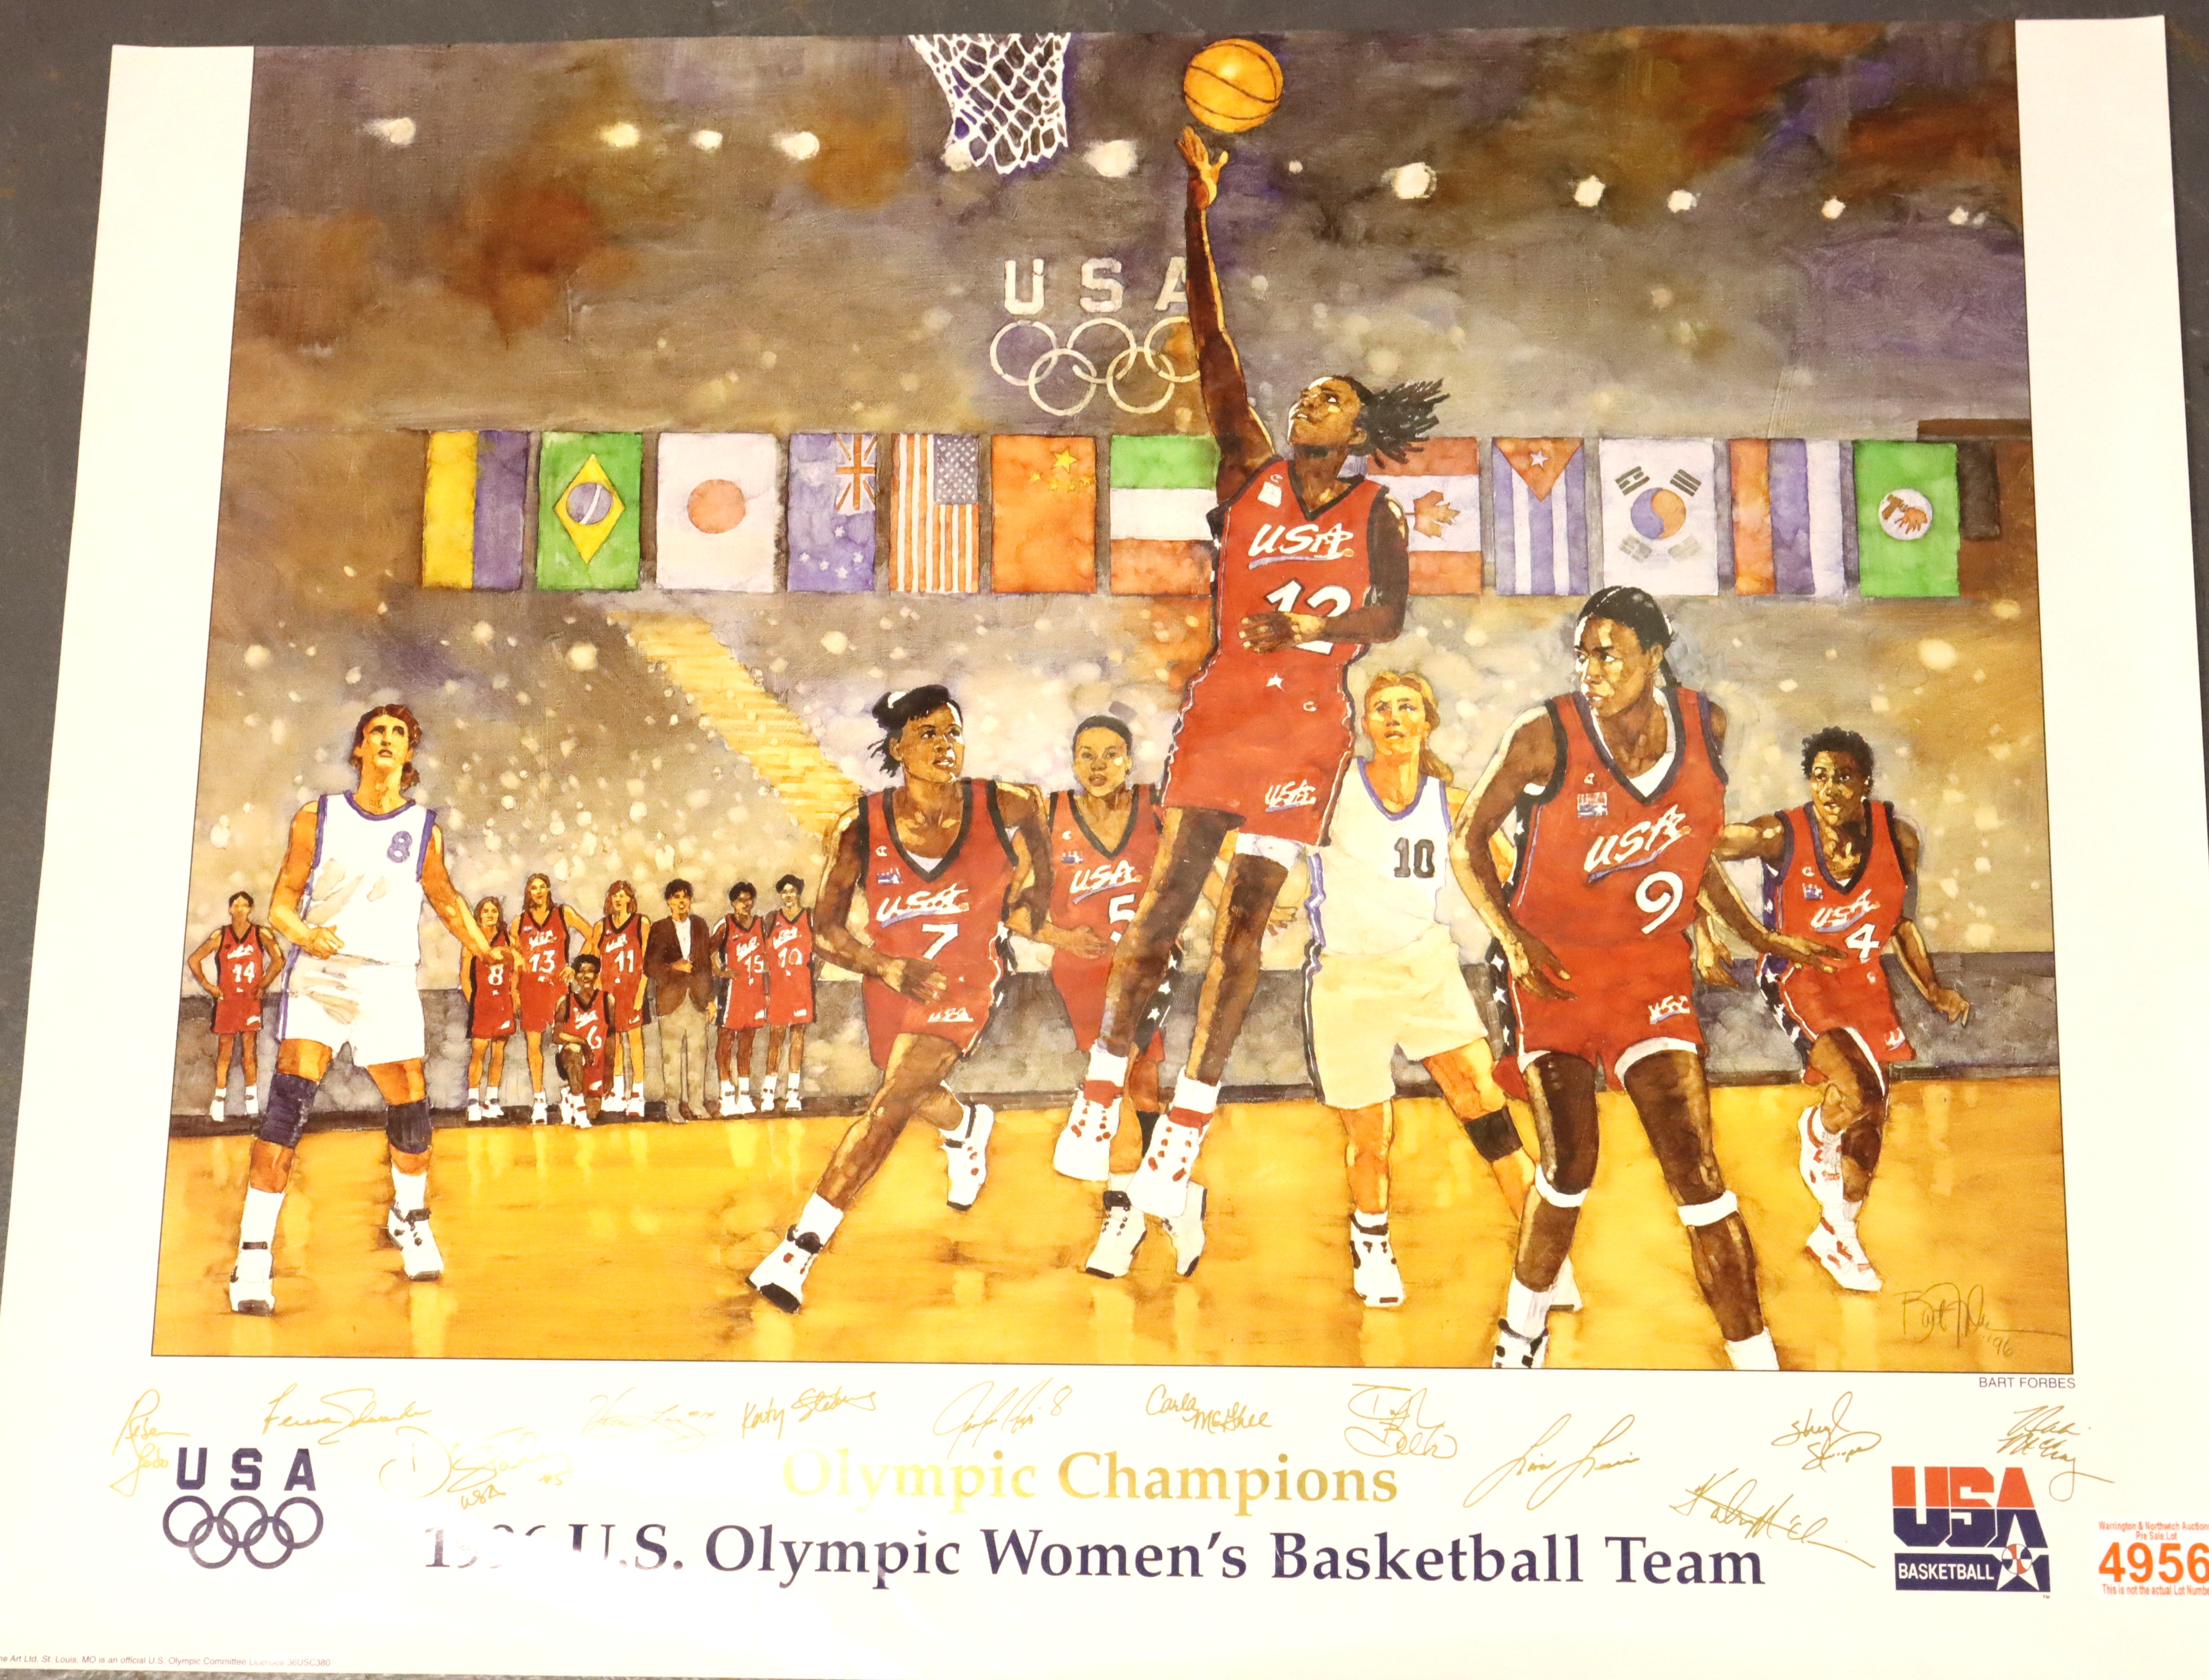 1996 Summer Olympics 22 x 28 special poster 1996 The Olympic Basketball Champions by Forbes. P&P